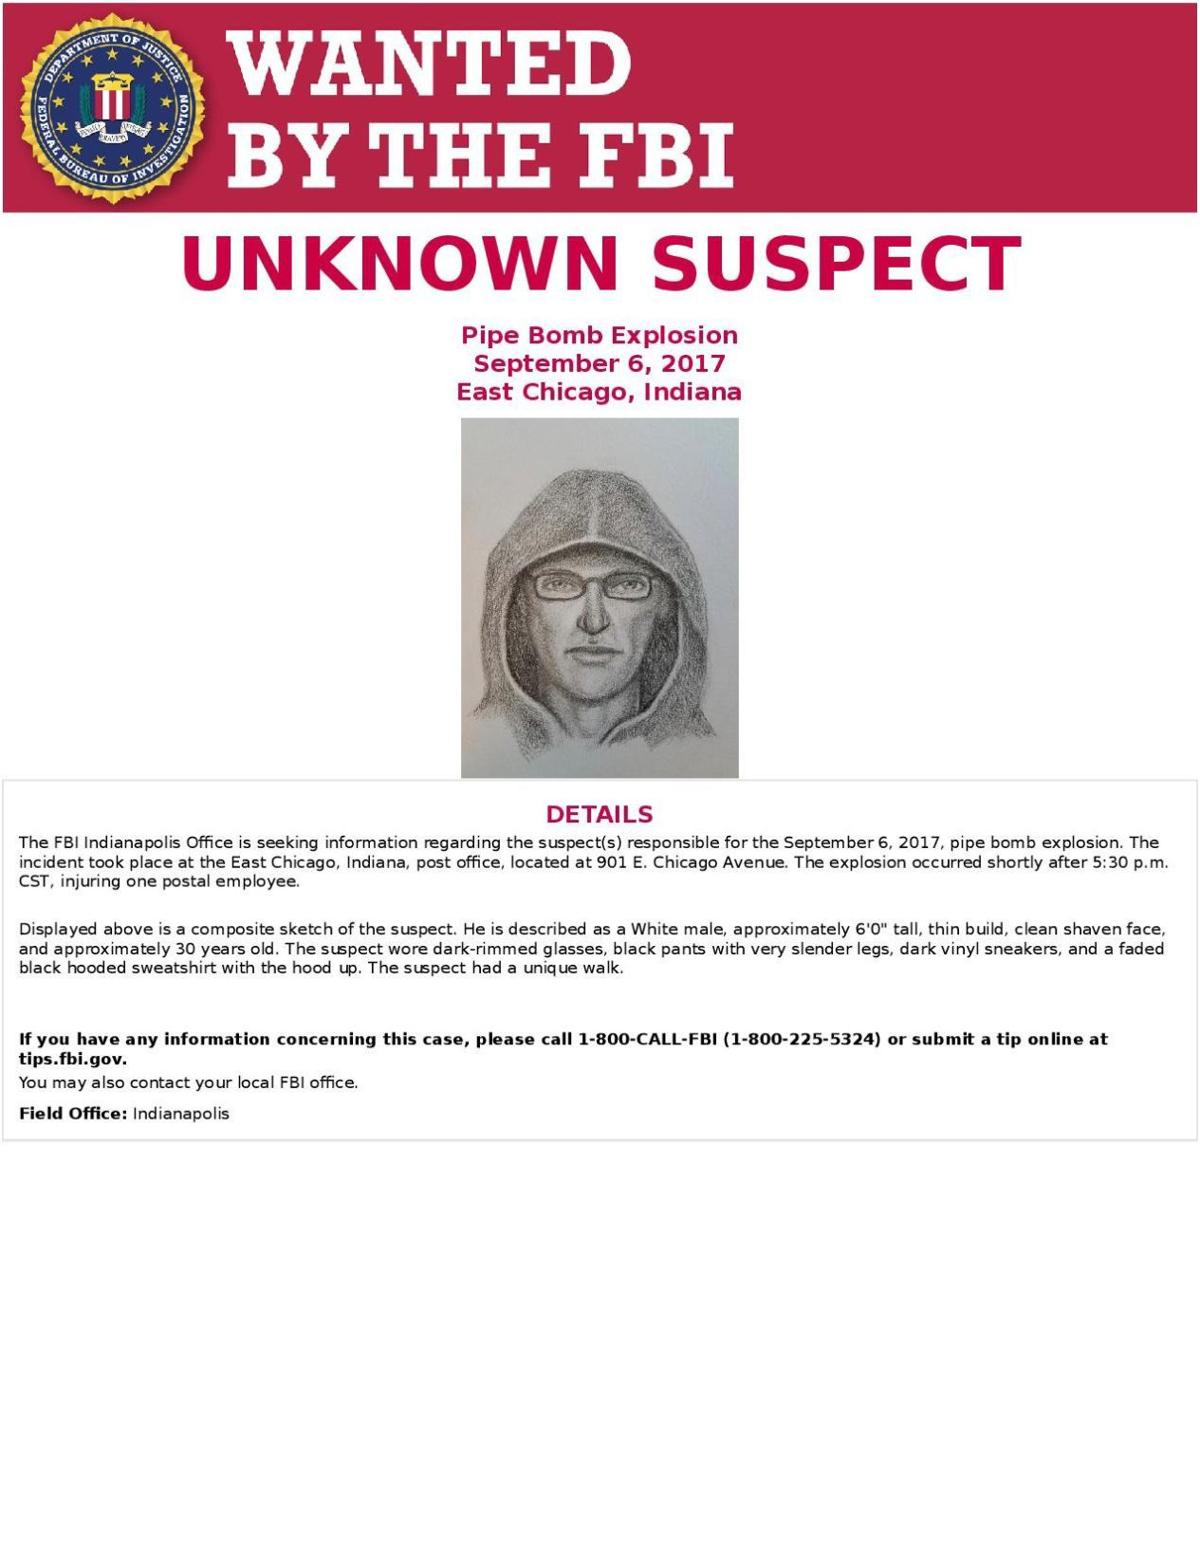 FBI releases sketch of person of interest in East Chicago post office bombing